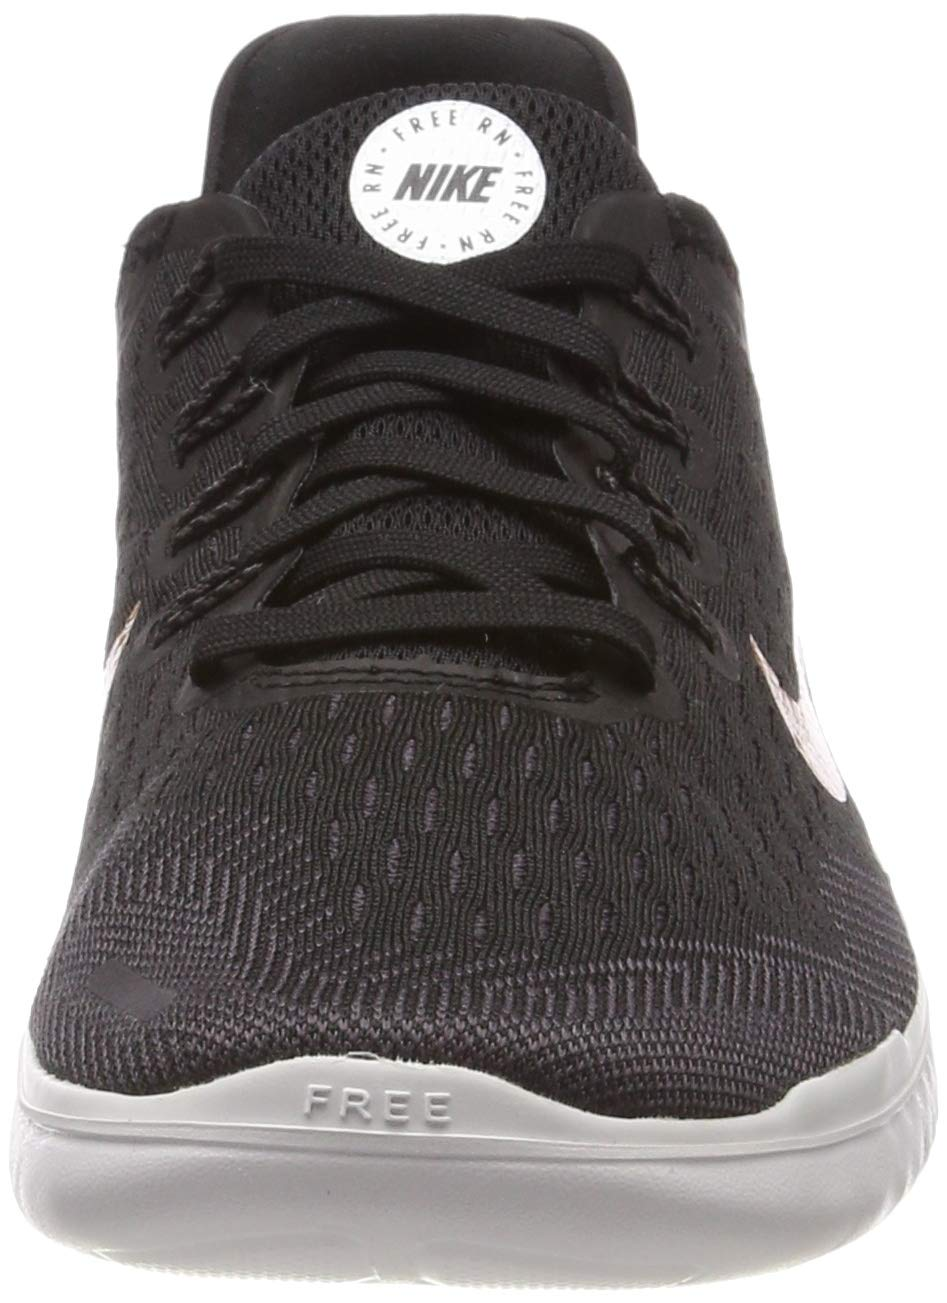 61Qw%2B4ebrzL - Nike Women's WMNS Free Rn 2018 Running Shoes